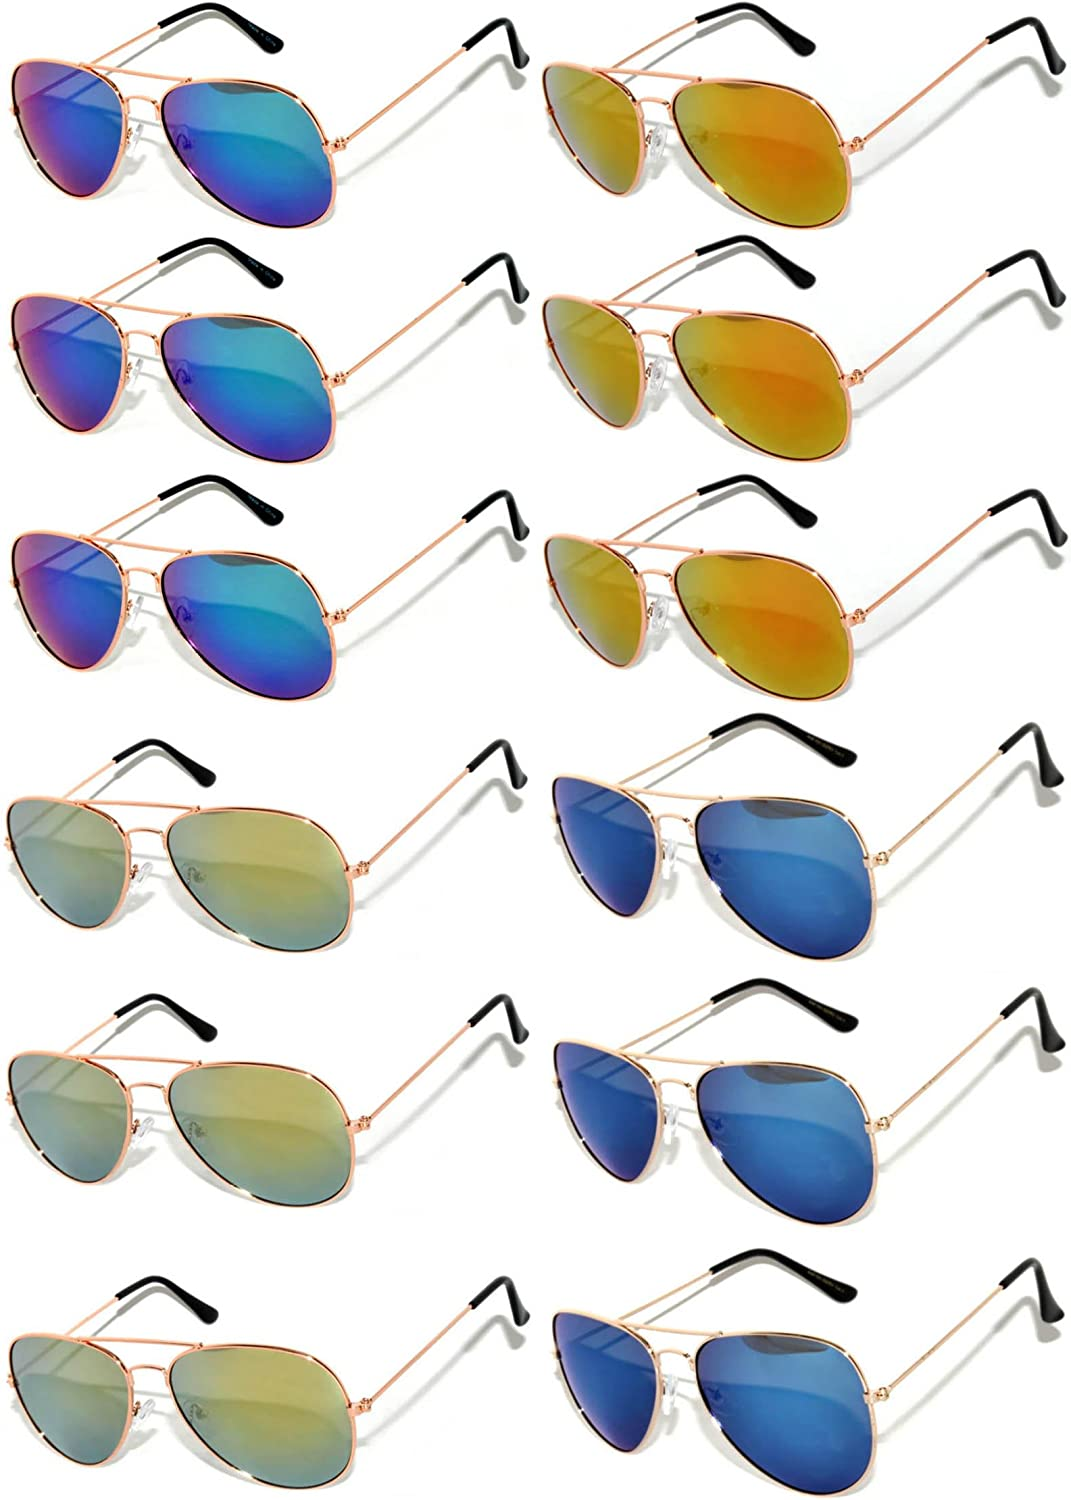 12 Pairs Classic Aviator Sunglasses Metal gold Silver Black Frame colord Mirror Lens OWL